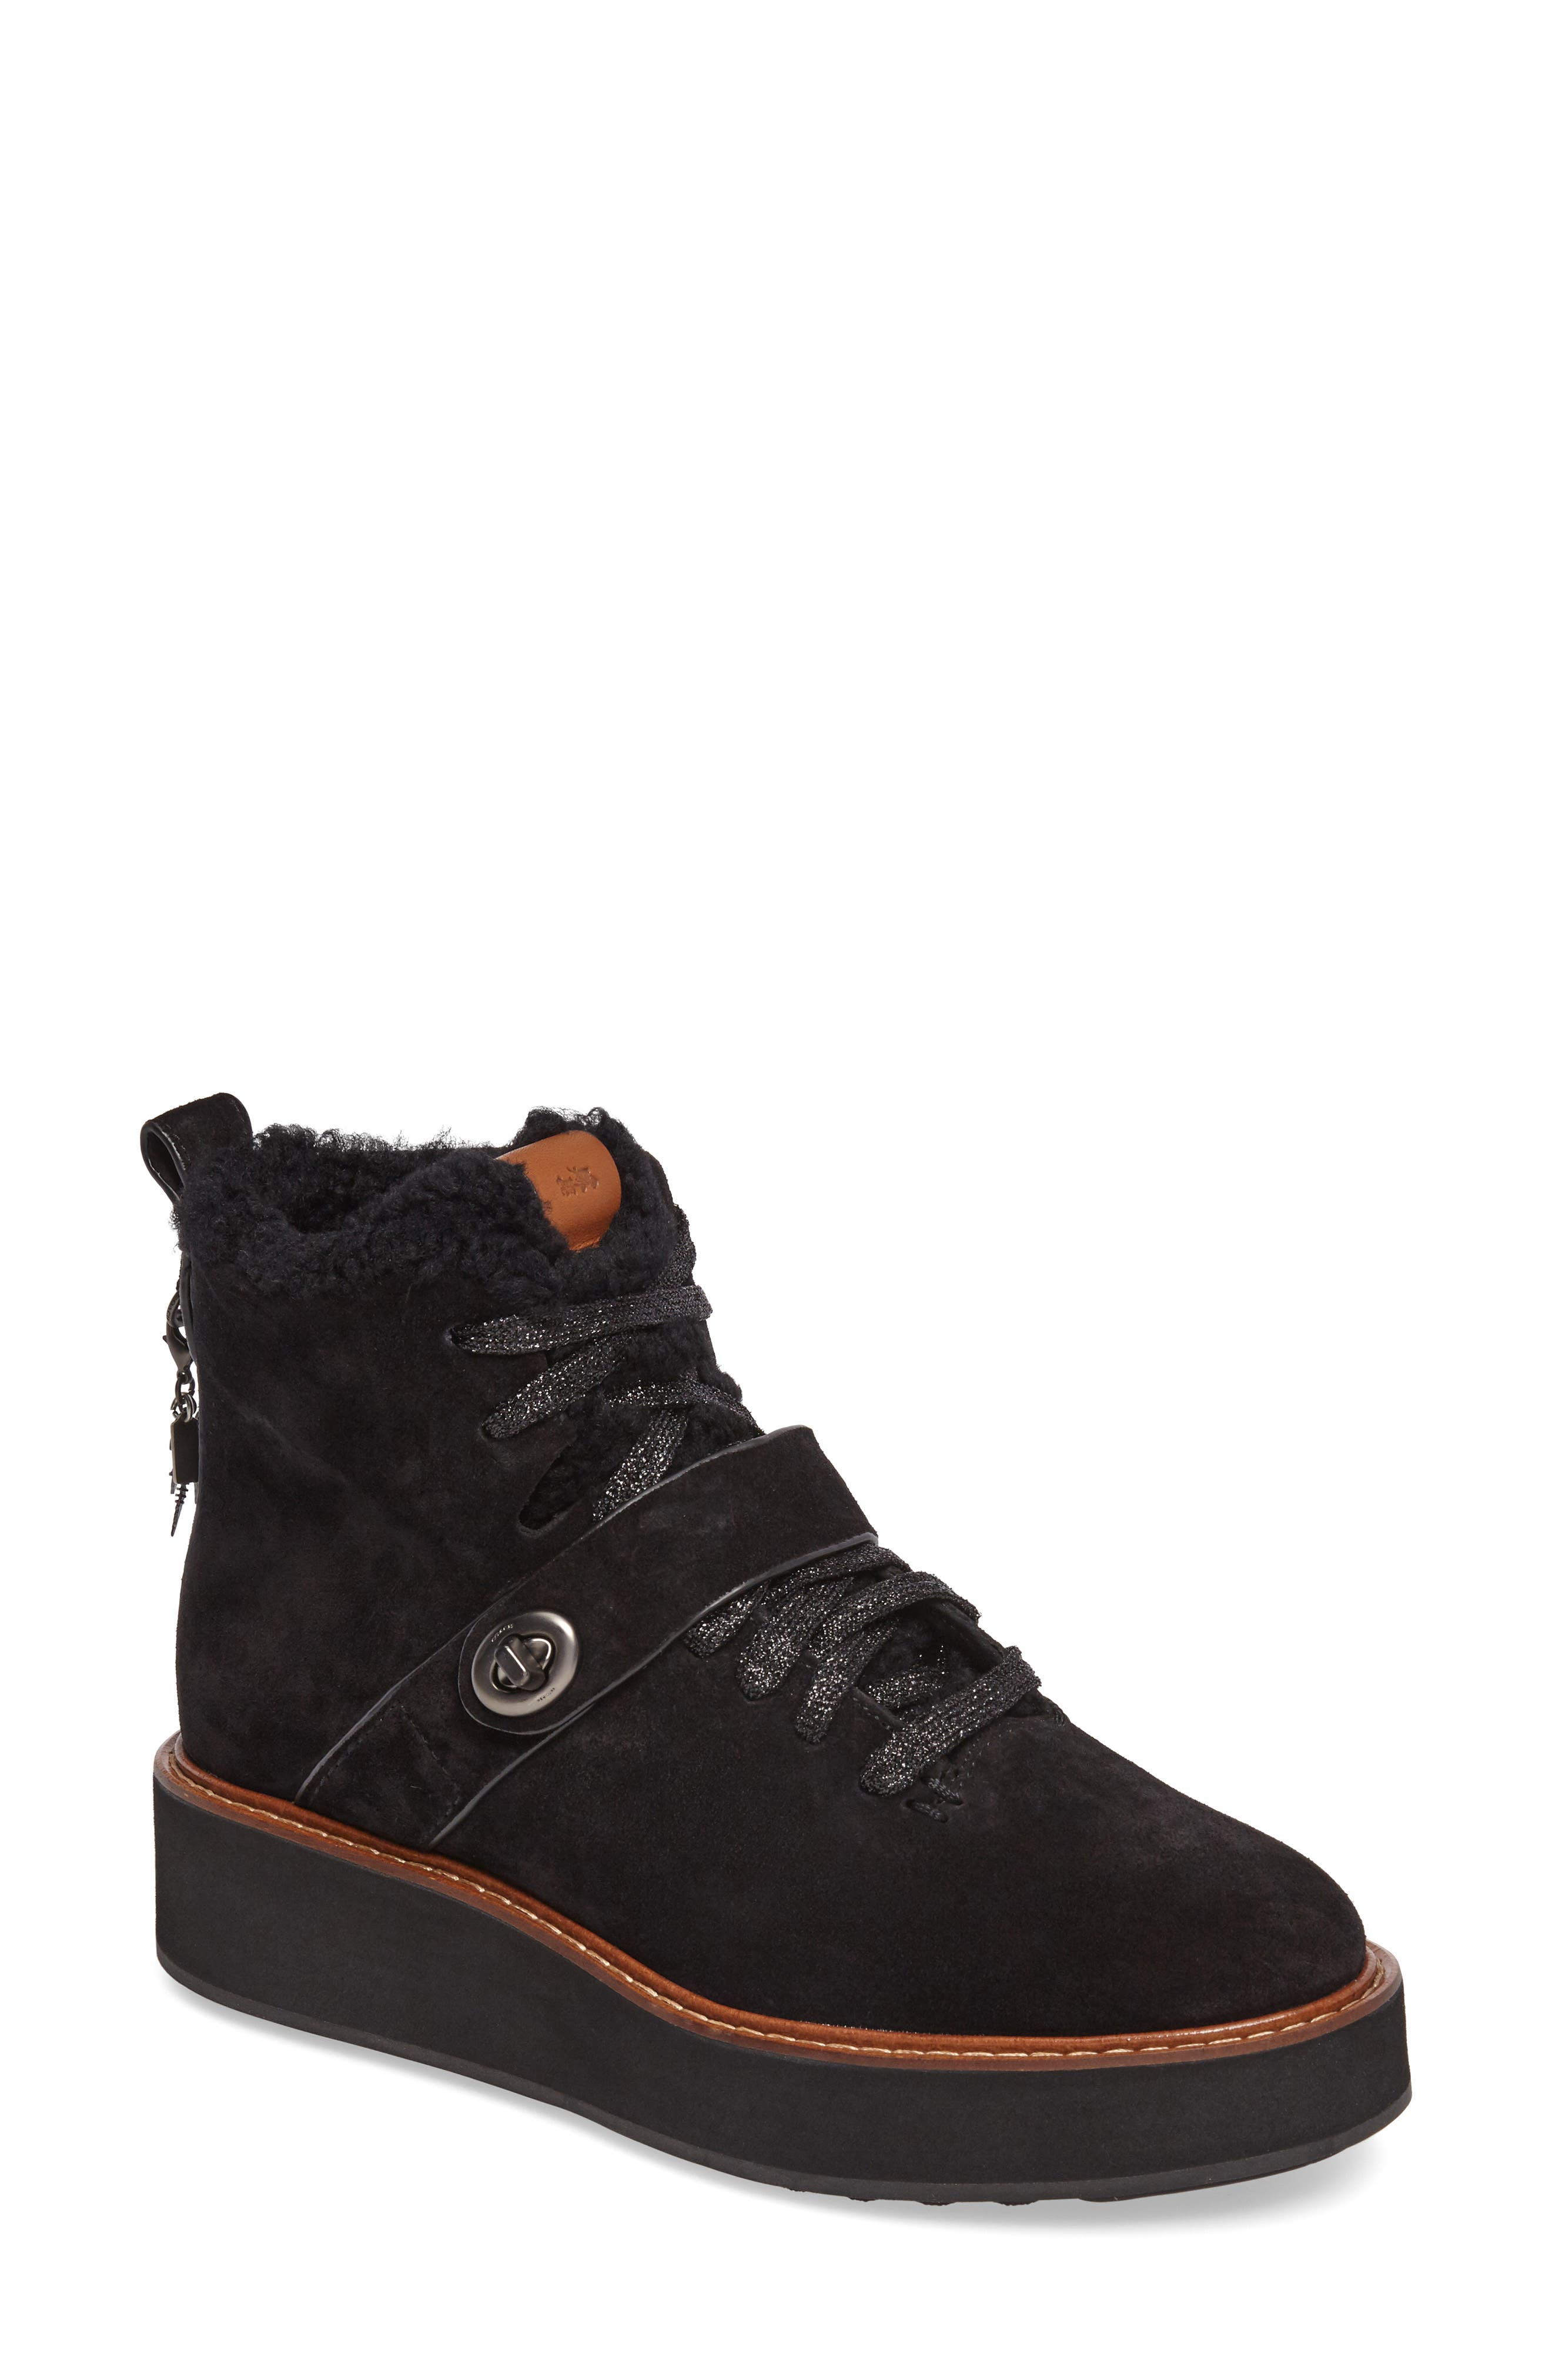 COACH Urban Hiker High Top Sneaker (Women)